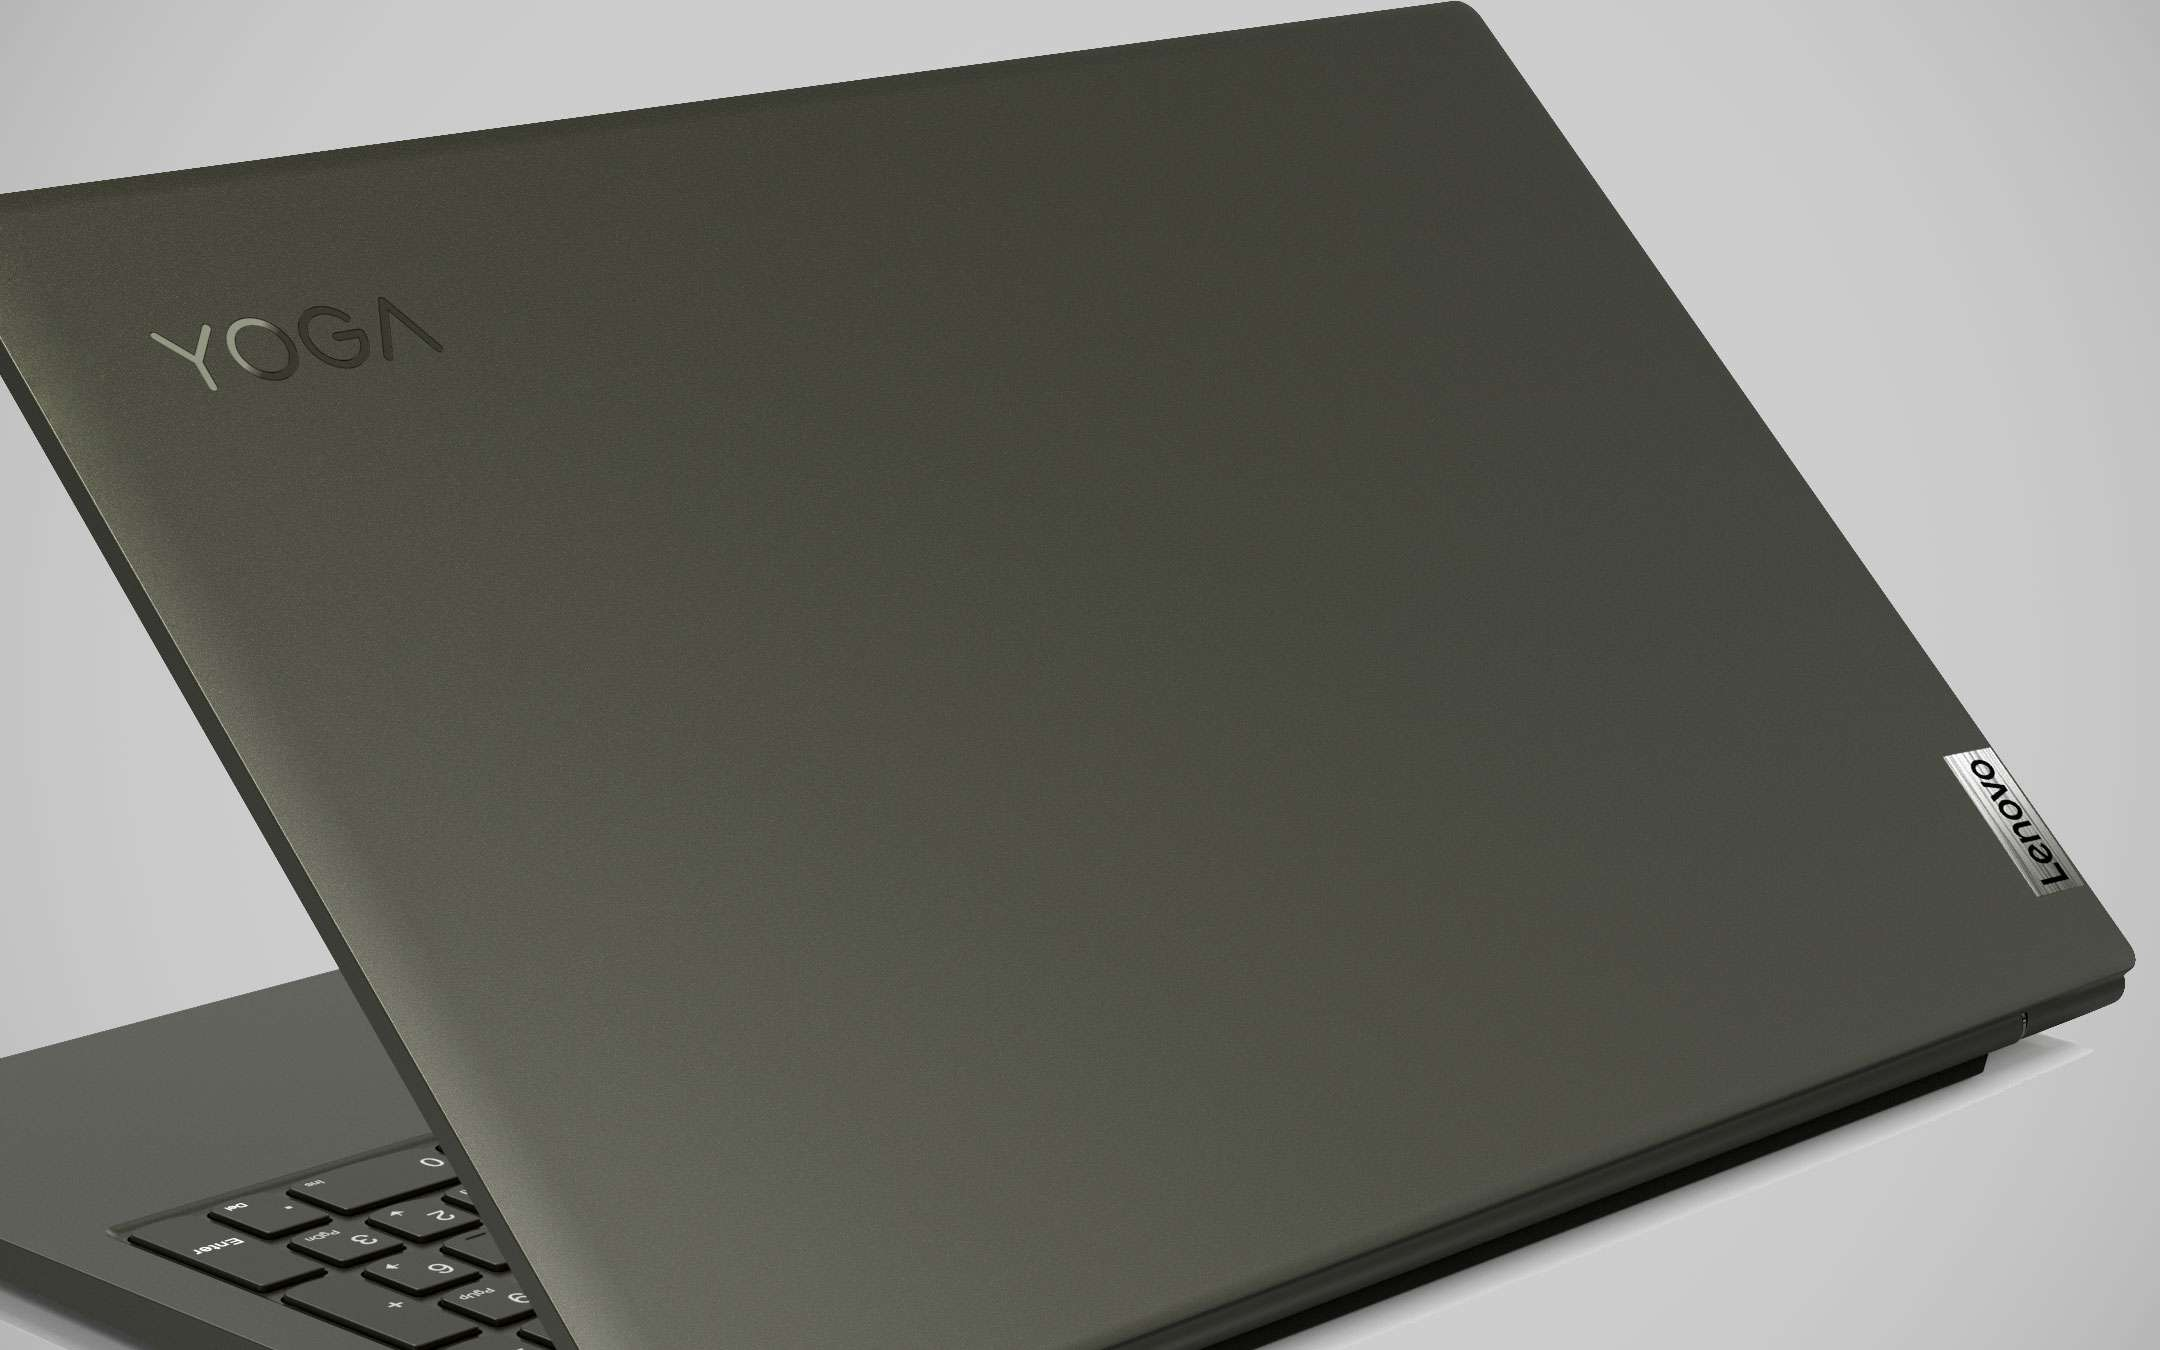 Lenovo Yoga Creator 7 and IdeaPad Creator 5 in Italy